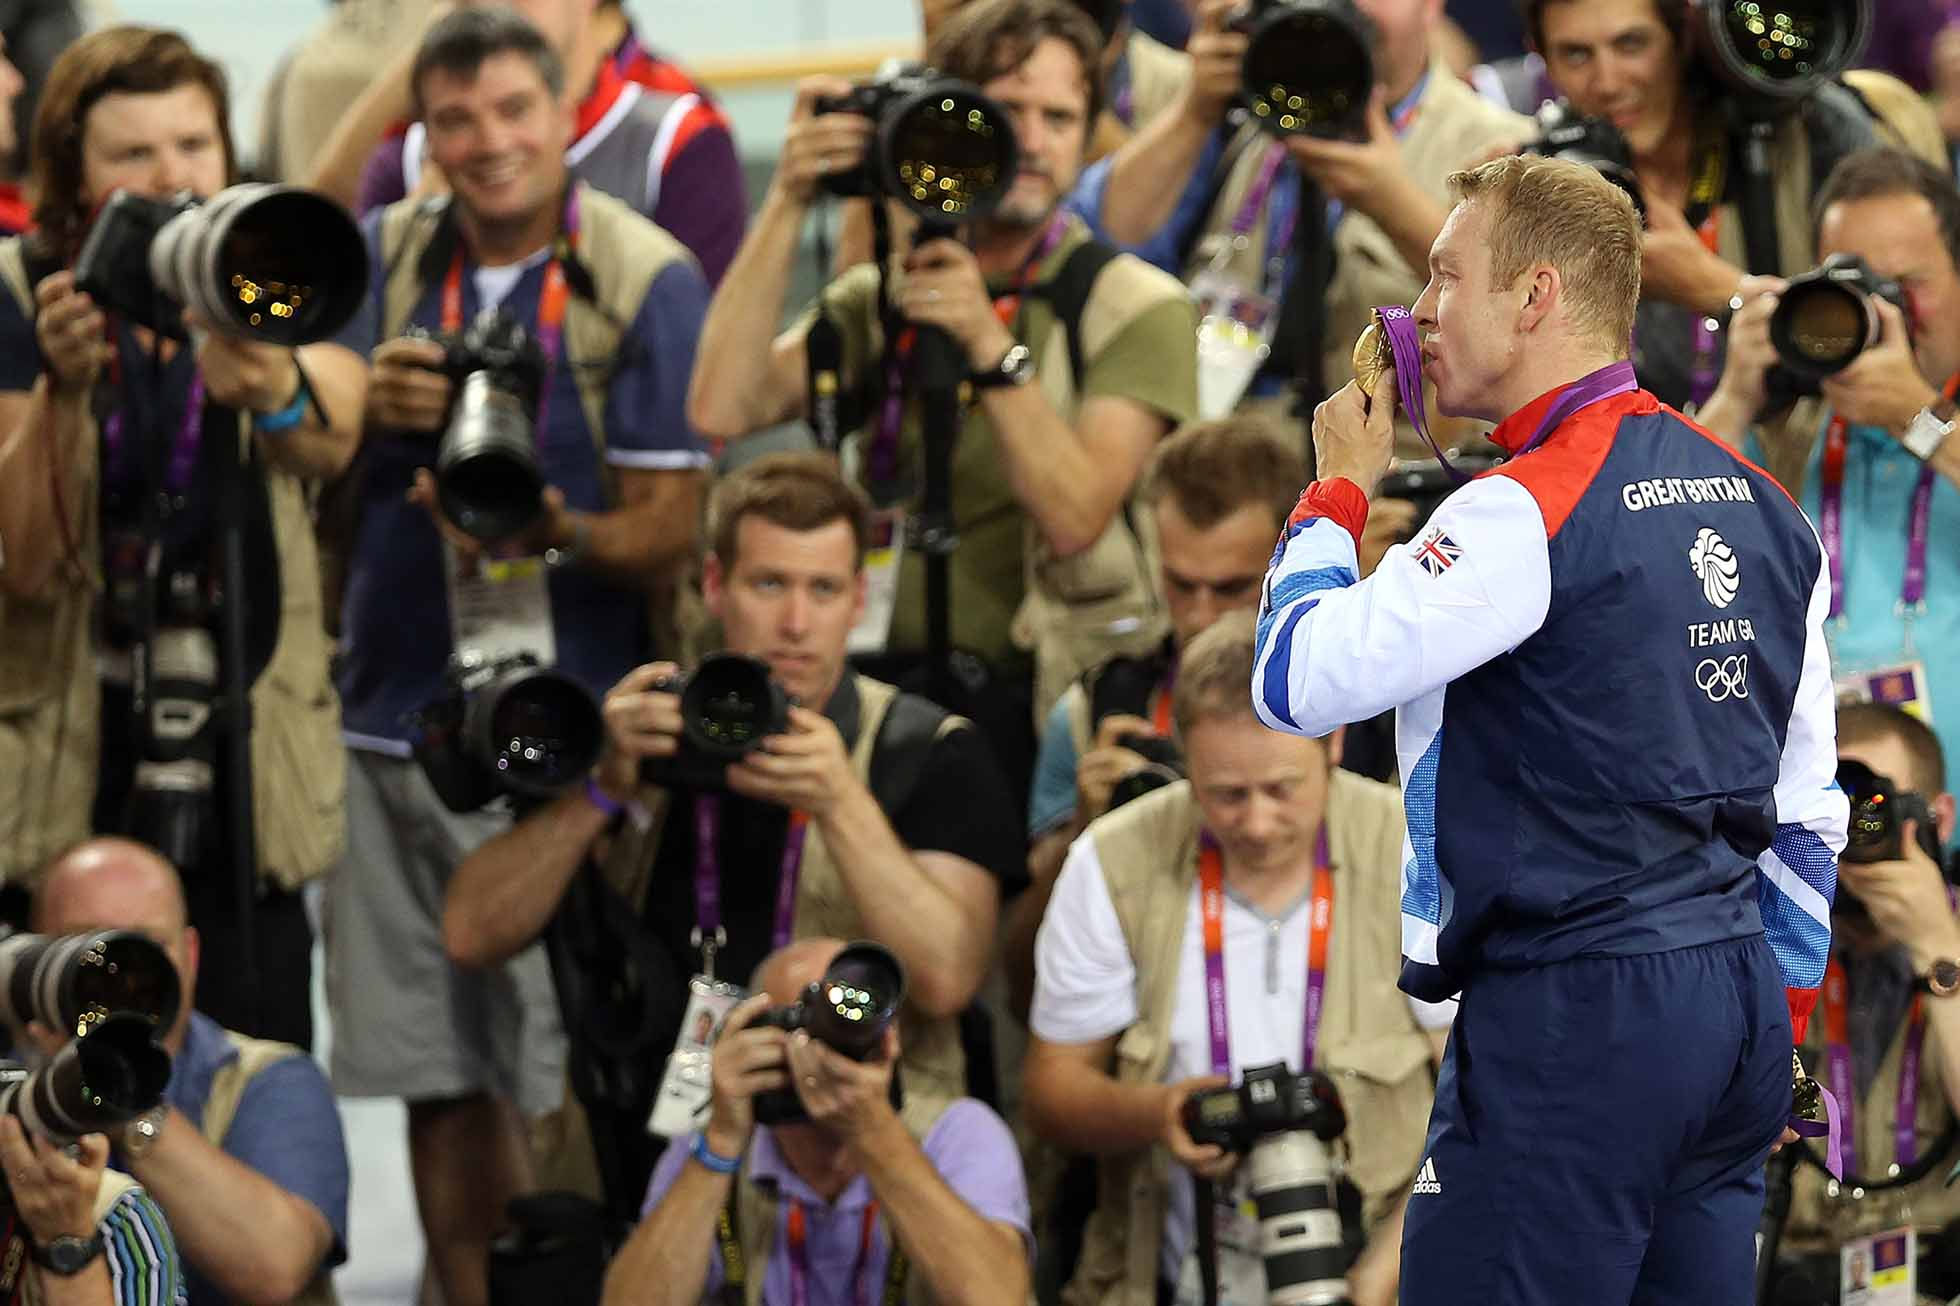 LONDON, ENGLAND - AUGUST 07: Sir Chris Hoy of Great Britain kisses the gold medal he won in final of the men's Keirin during Day 11 of the London 2012 London Olympics at the Veledrome on August 07, 2012 in London, England. (Photo by Ian MacNicol/Getty Images)